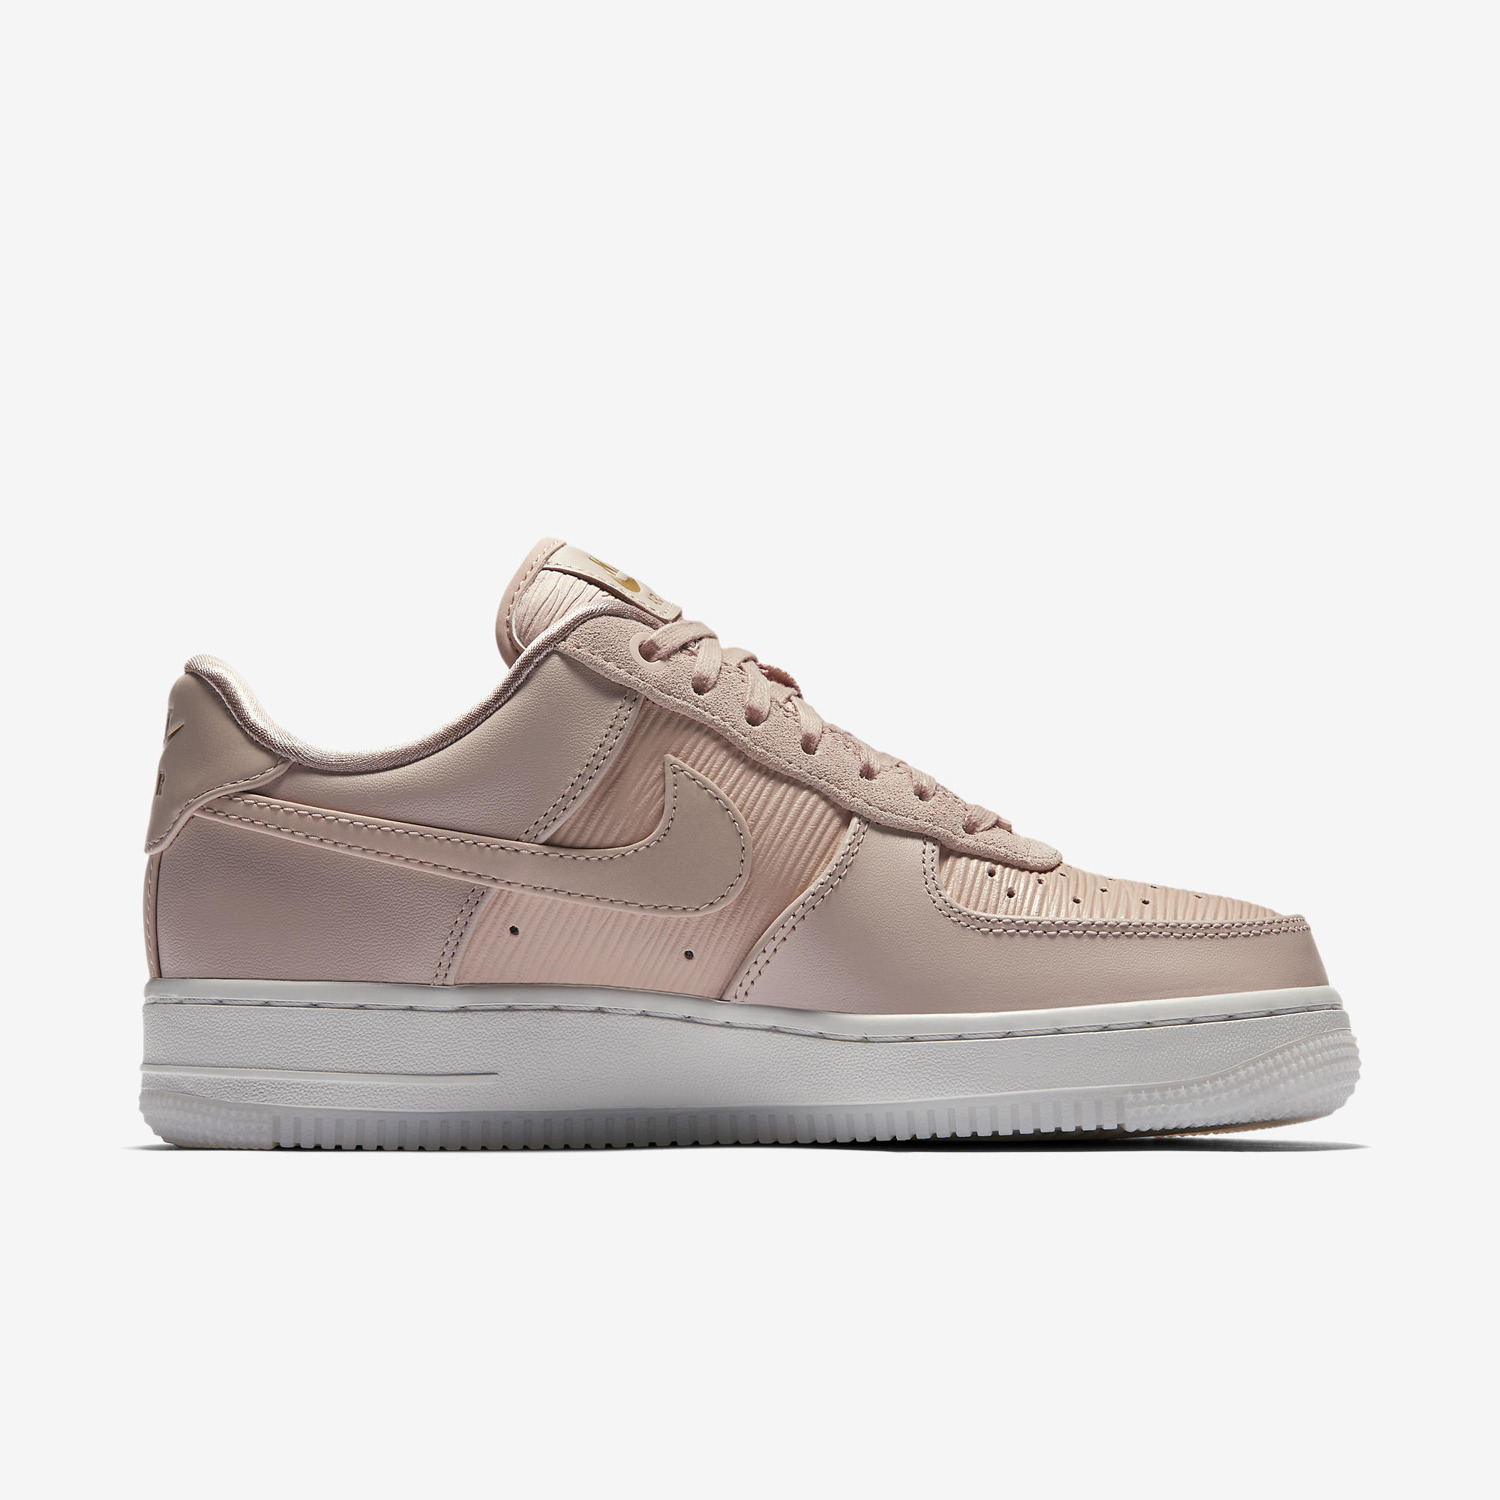 new style f1d0c 9ade9 Buty damskie Nike Air Force 1 07 Lux Particle Beige 898889 201 ...